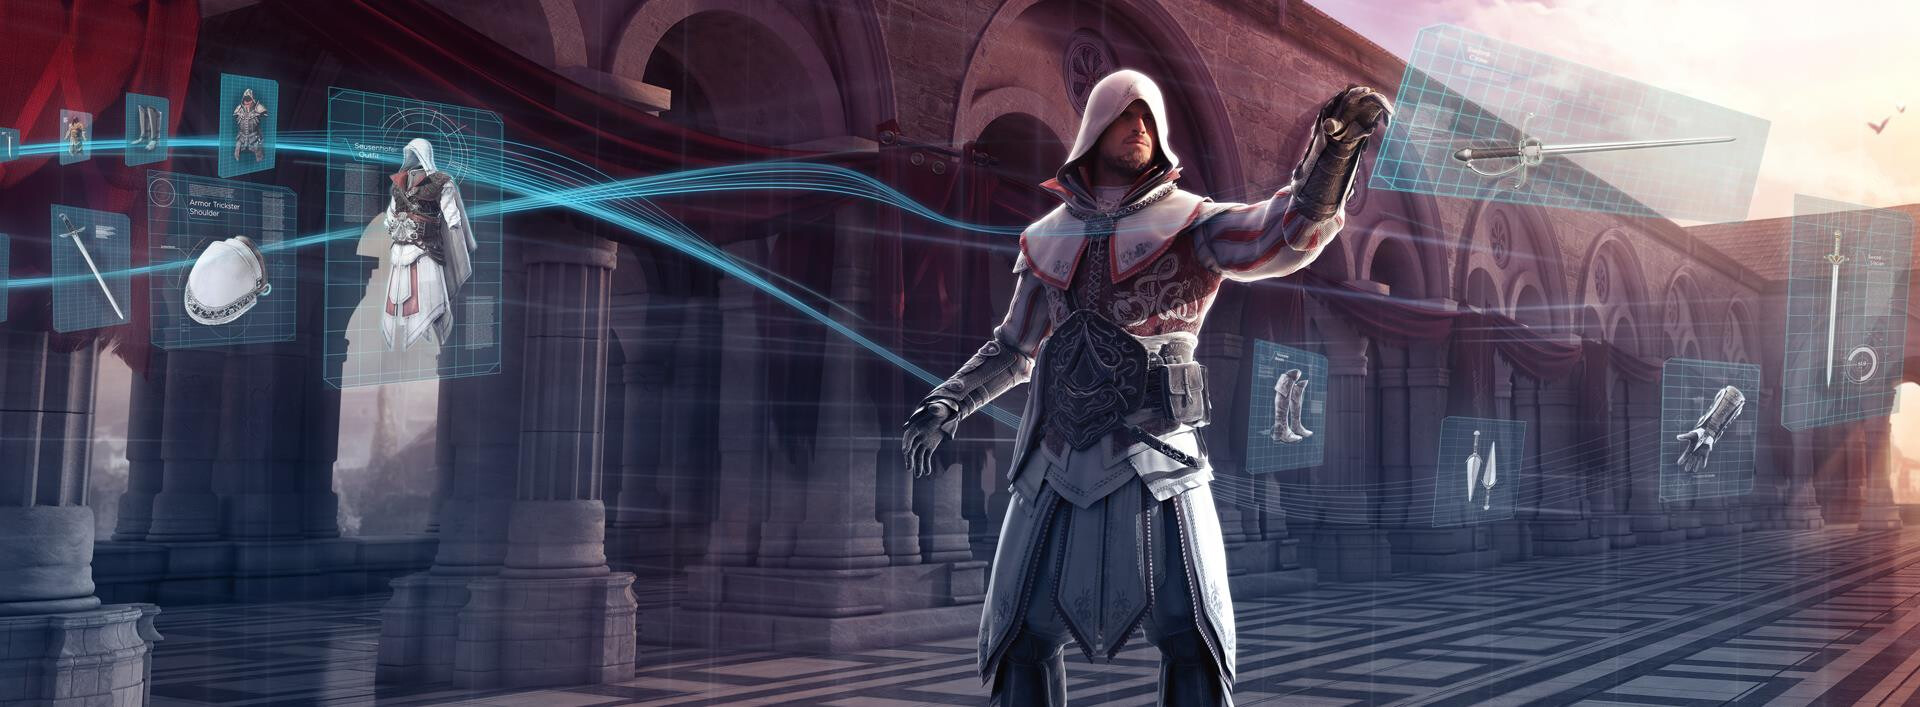 Assassin's Creed: Identity features mind-blowing graphics ...